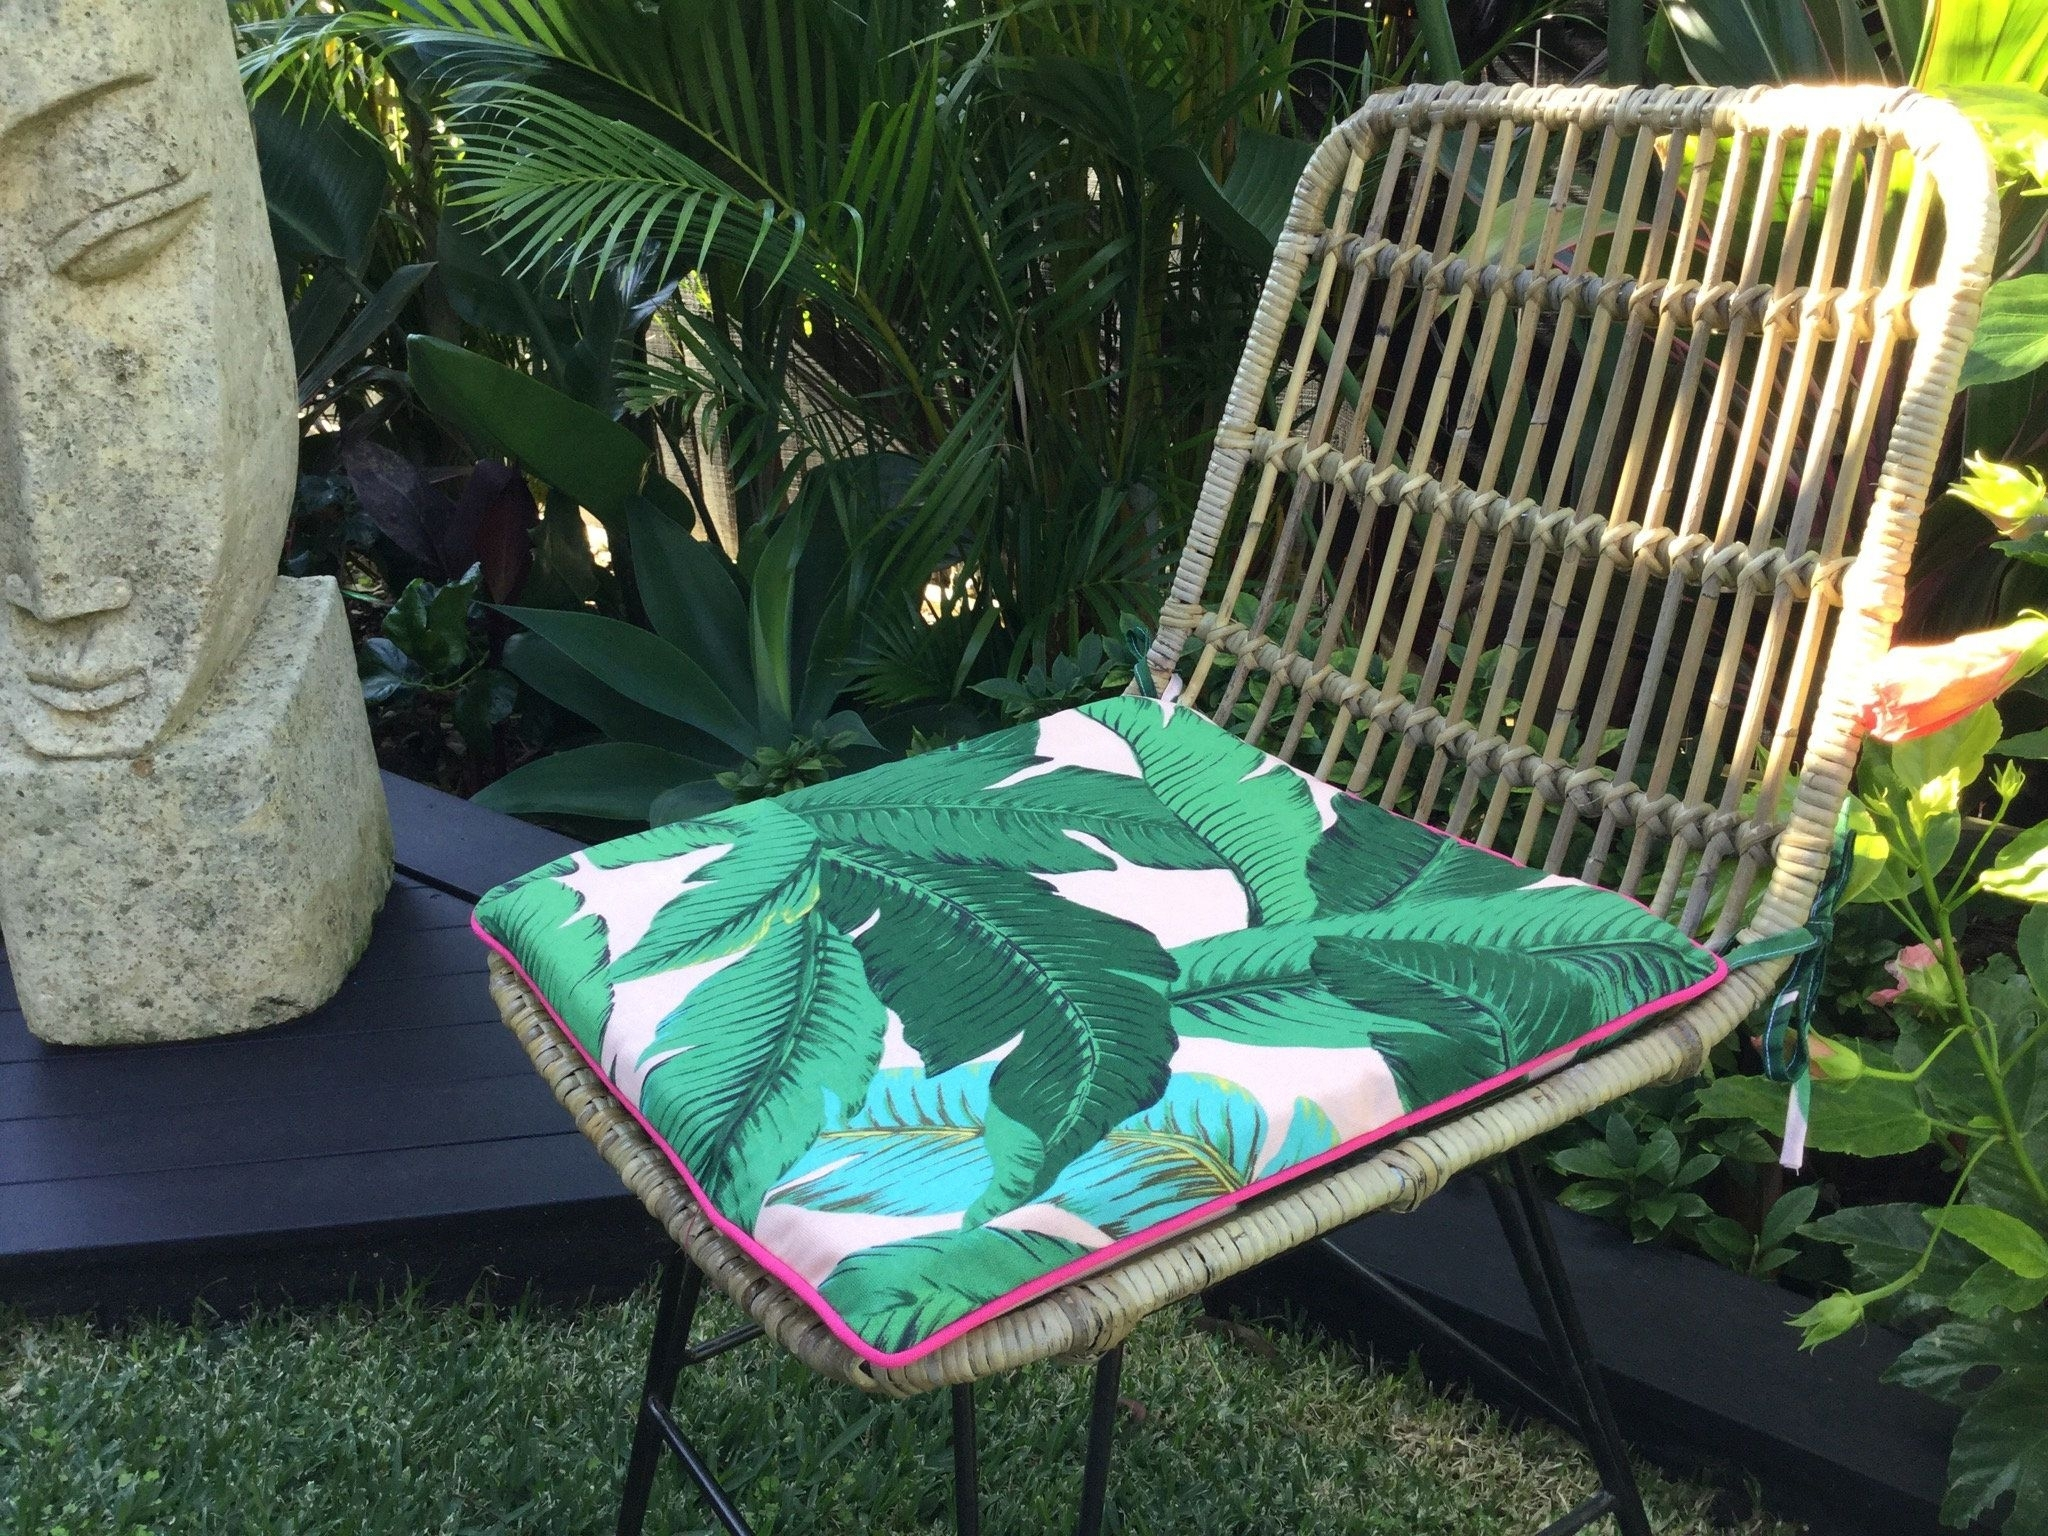 Banana Leaf Chairs With Cushion For Well Known Chair Pads, Palm Leaf Cushions, Banana Leaf Outdoor Cushions (#4 of 20)